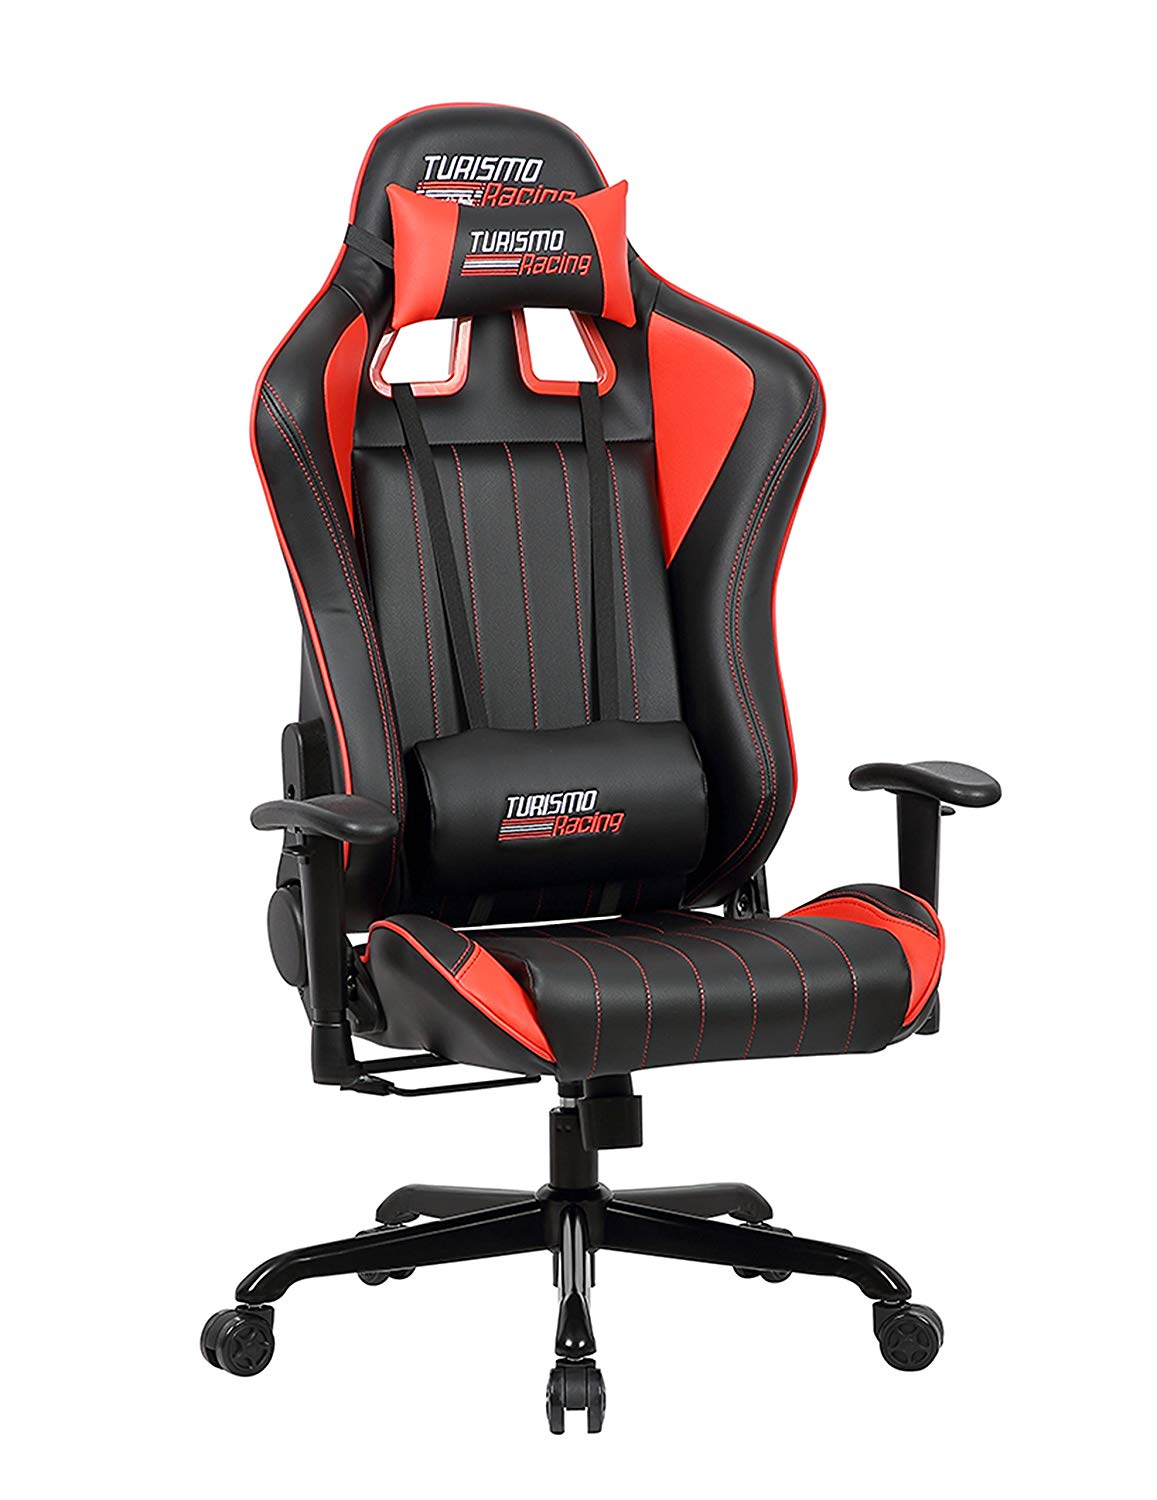 Gamers Chairs Turismo Gaming Chair Review Ultimategamechair